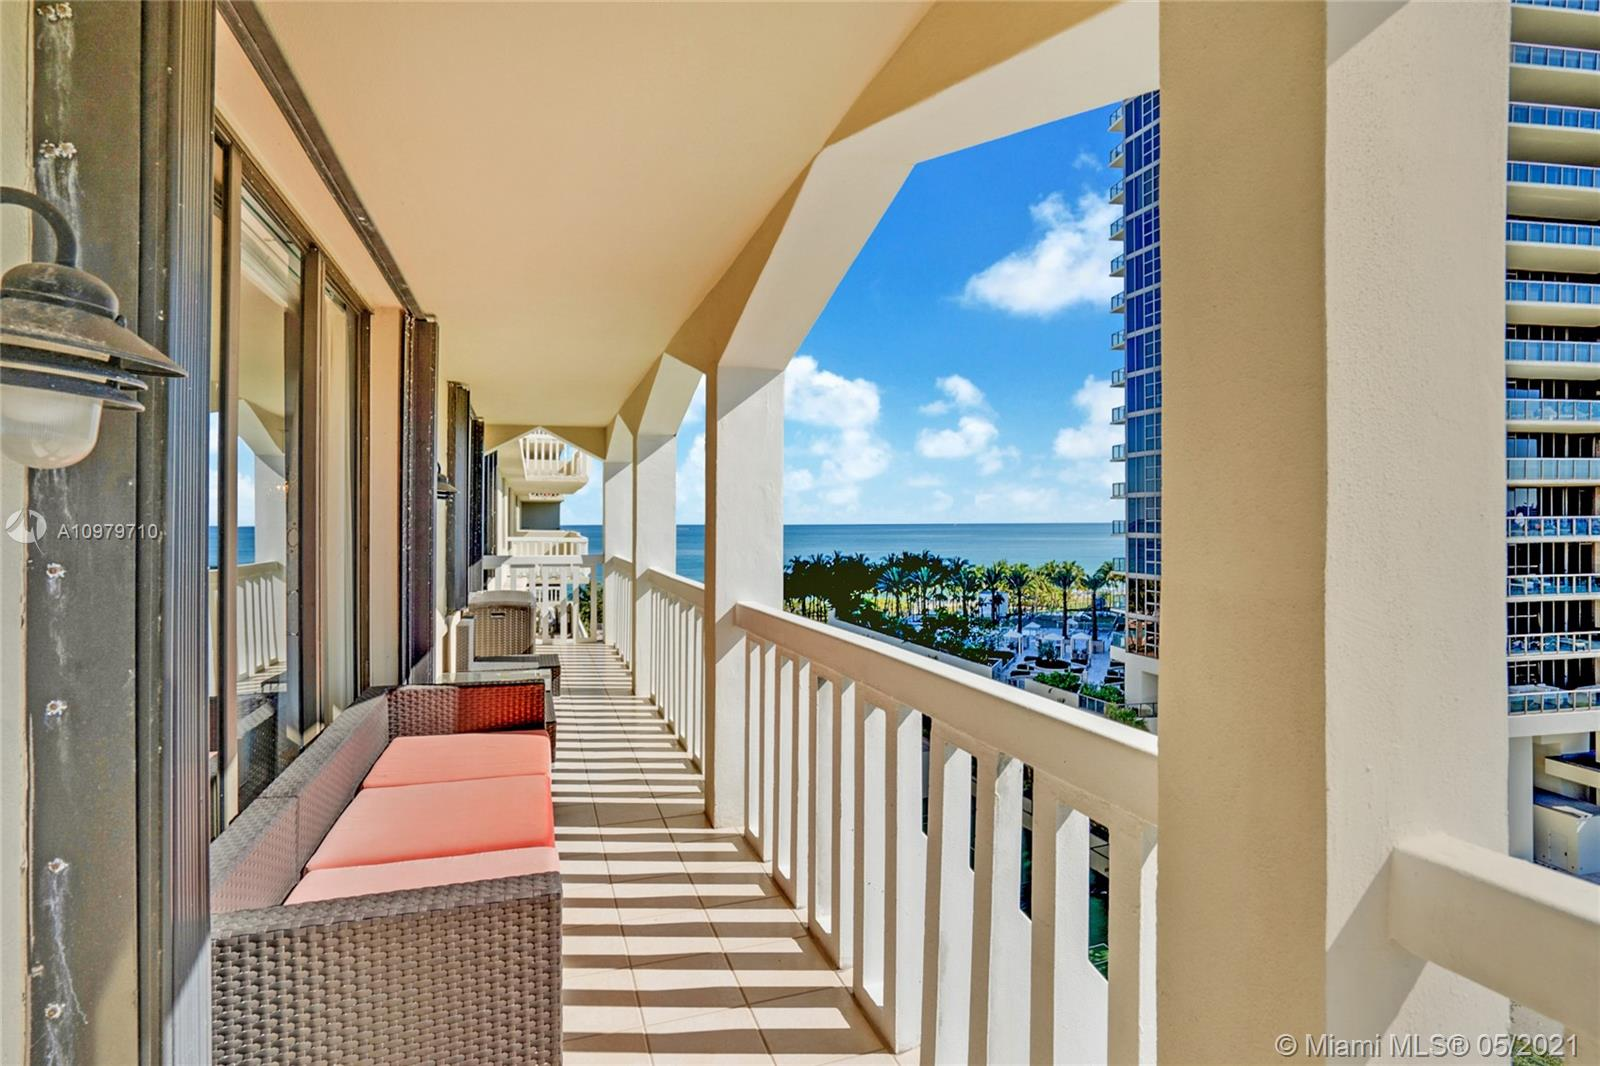 Photo of 9801 Collins Ave #10R, Bal Harbour, Florida, 33154 - Sunrise views from the balcony